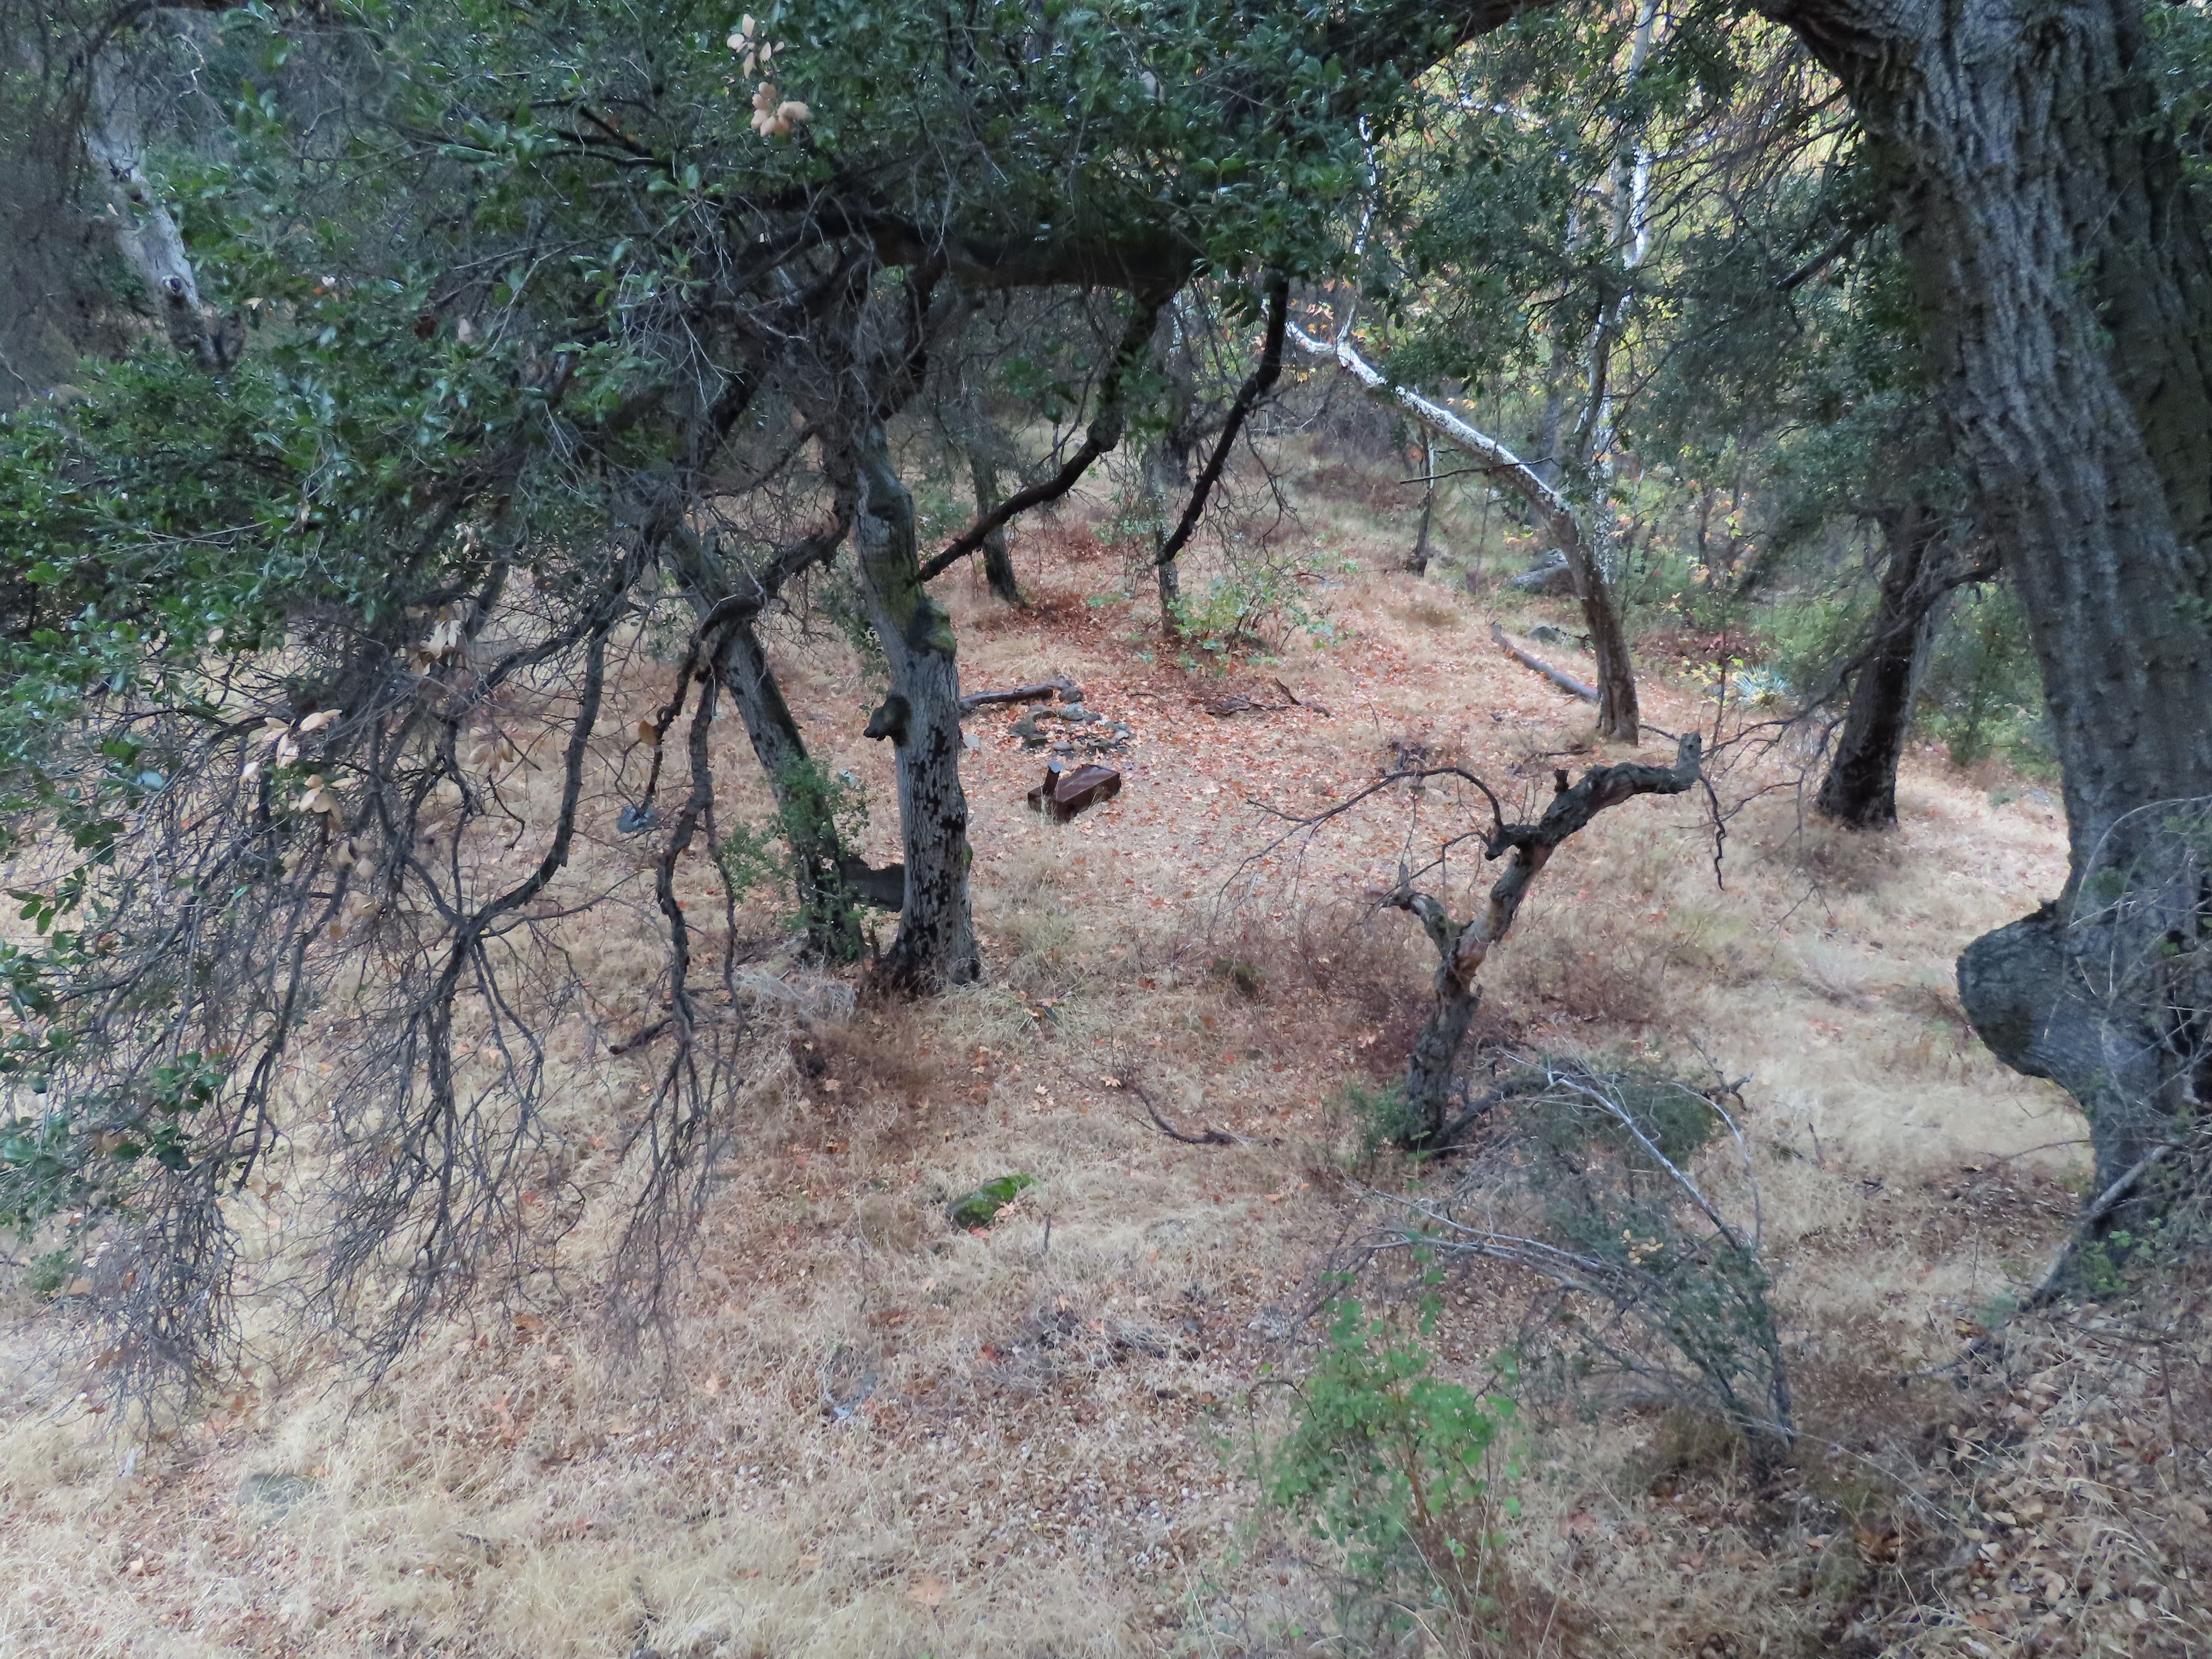 Cove Camp Agua Blanca Trail creek sespe wilderness ice can stove los padres national forest